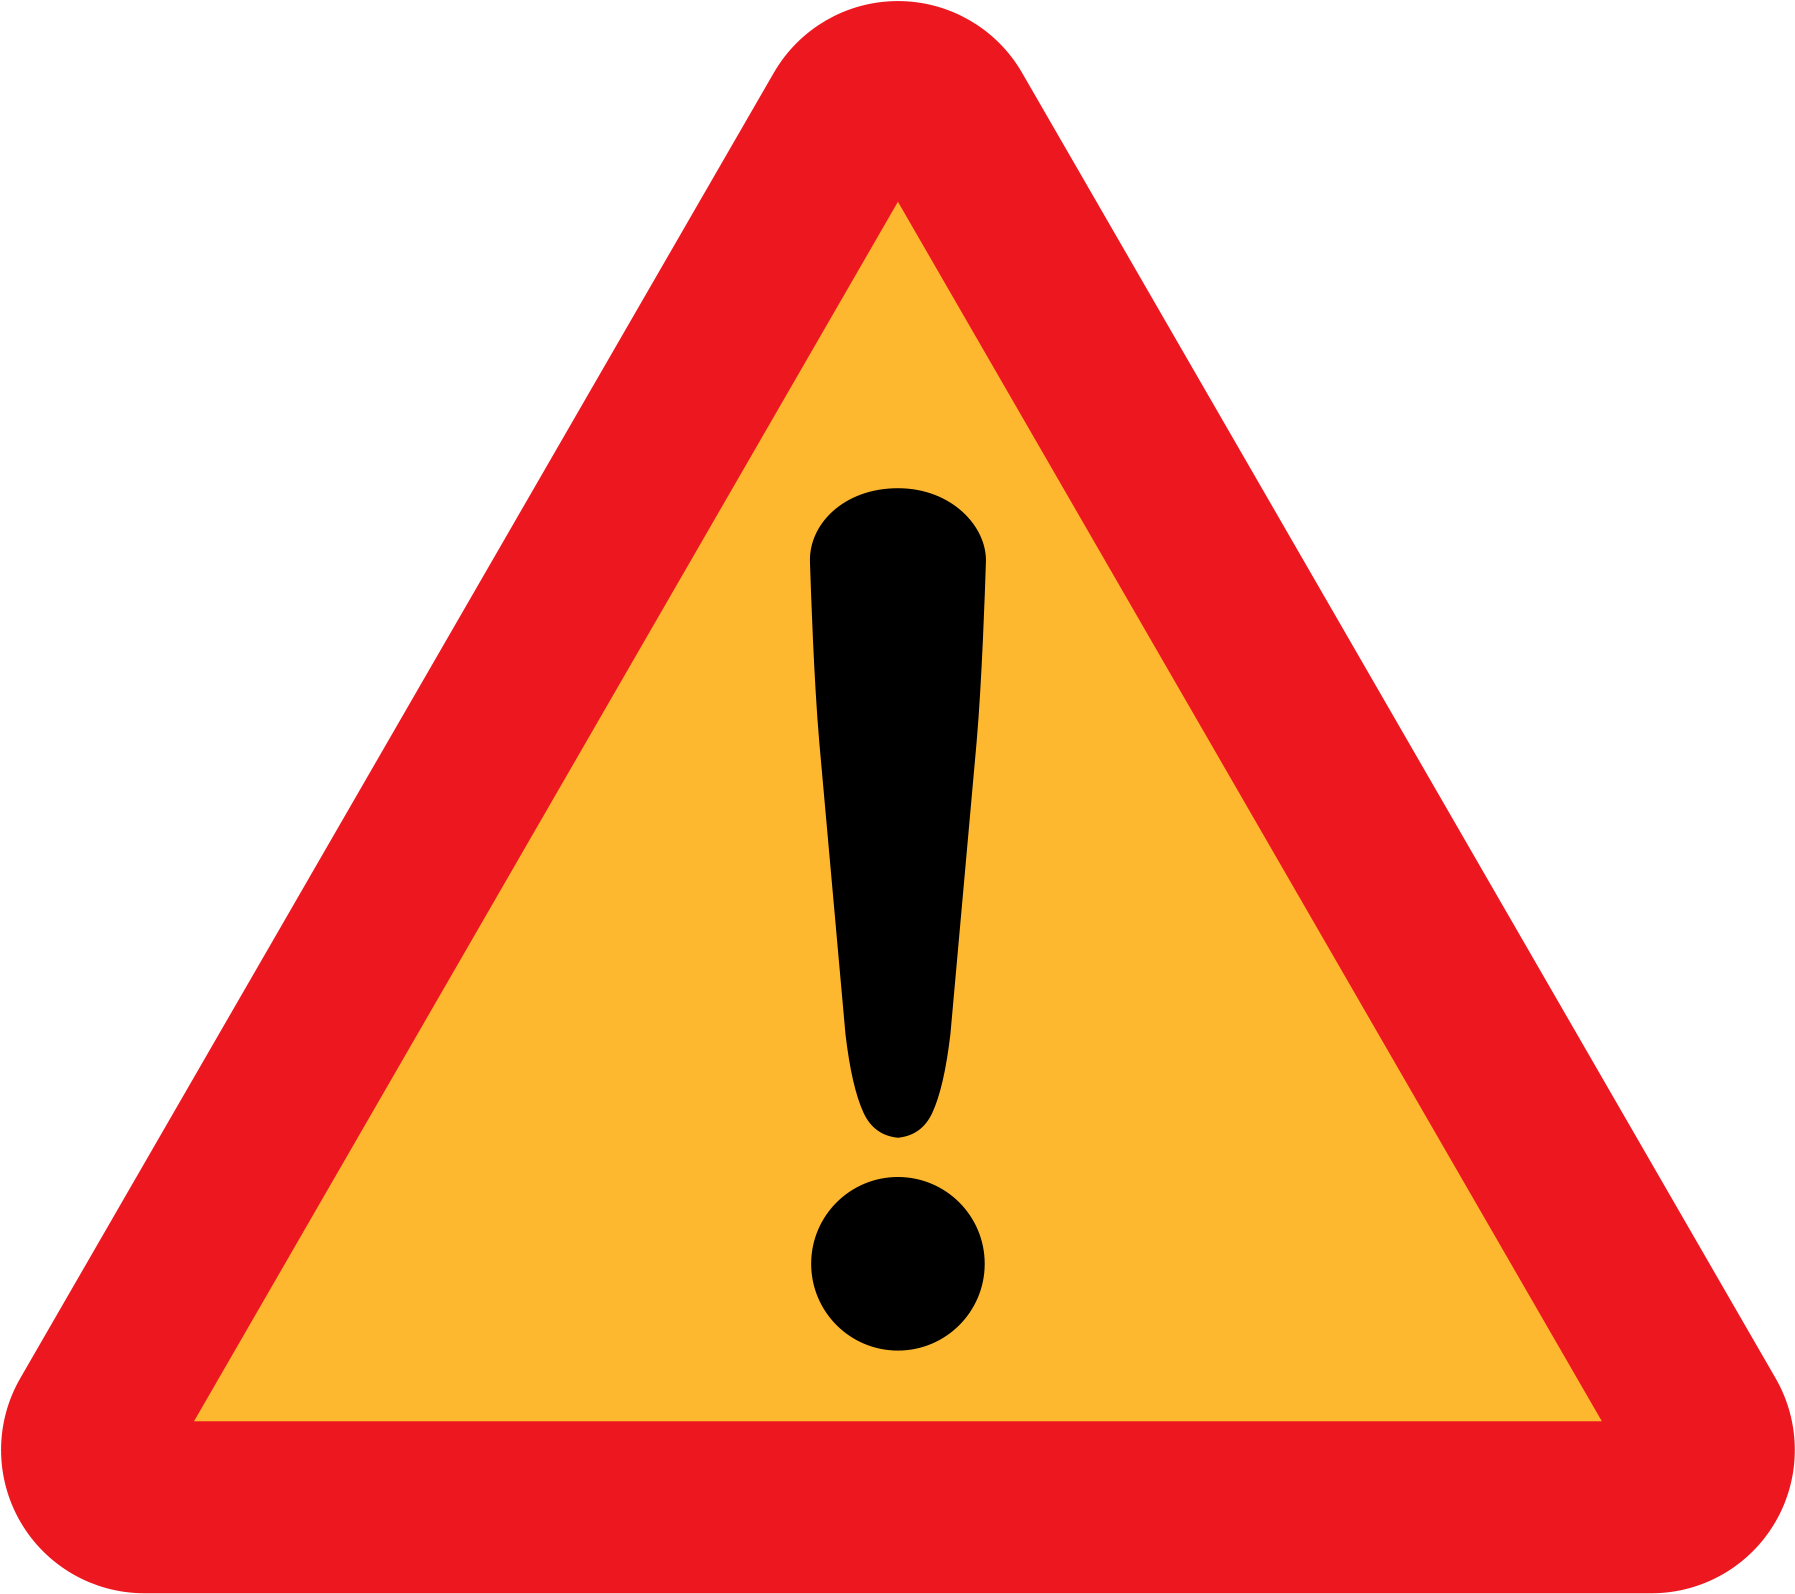 Danger Sign From Wikipedia - Under Construction Png Icon